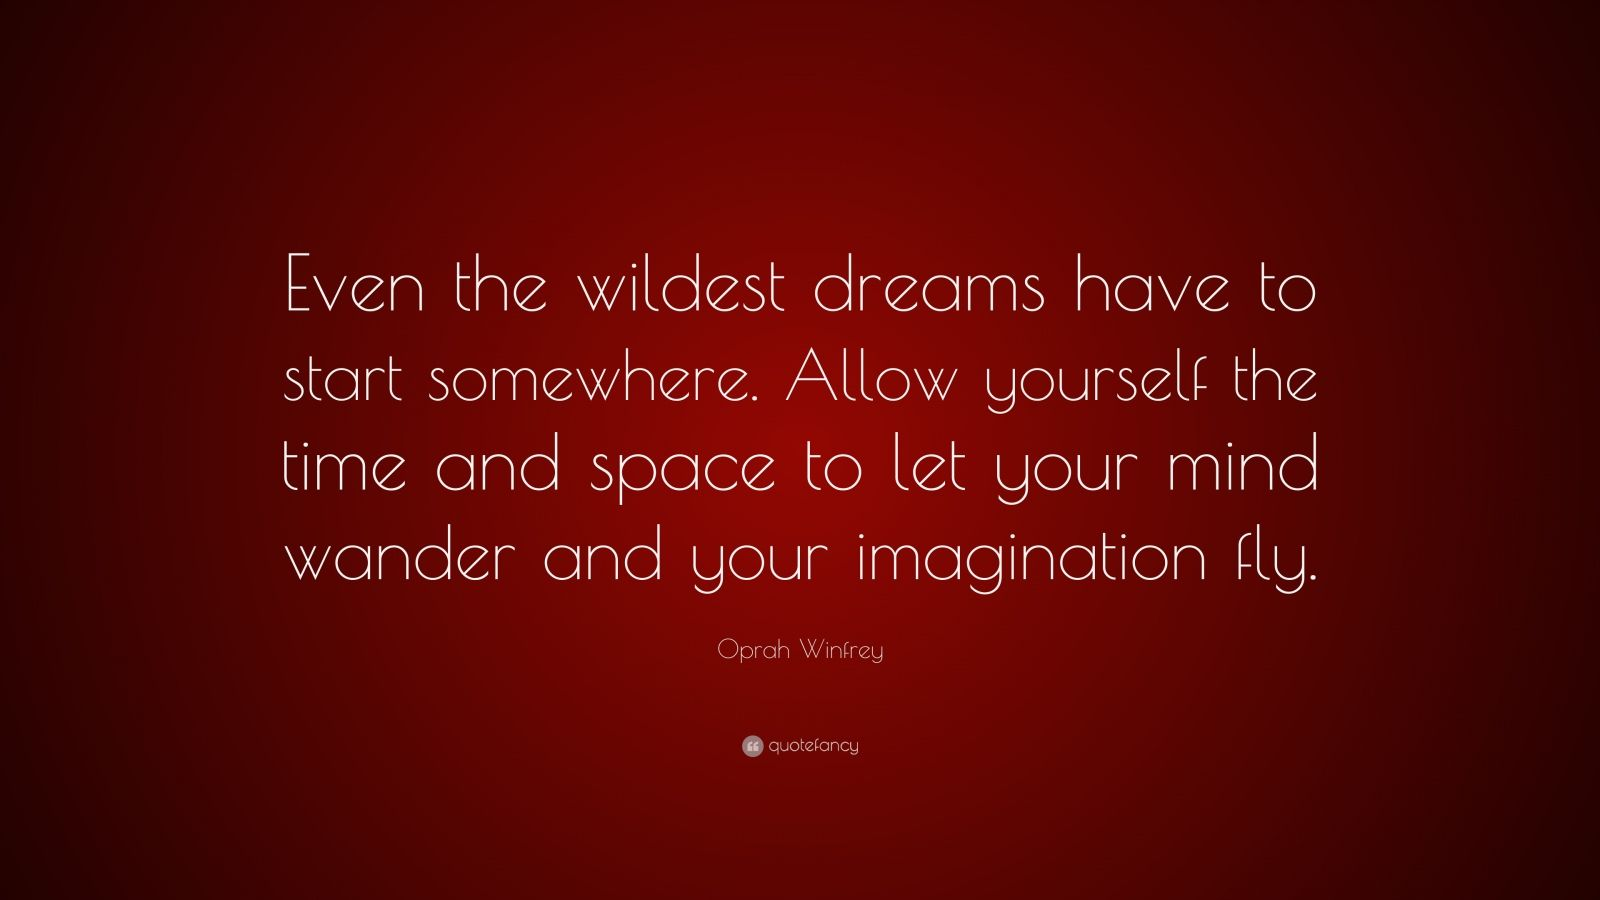 """Oprah Winfrey Quote: """"Even the wildest dreams have to start somewhere. Allow yourself the time and space to let your mind wander and your imagination fly."""""""